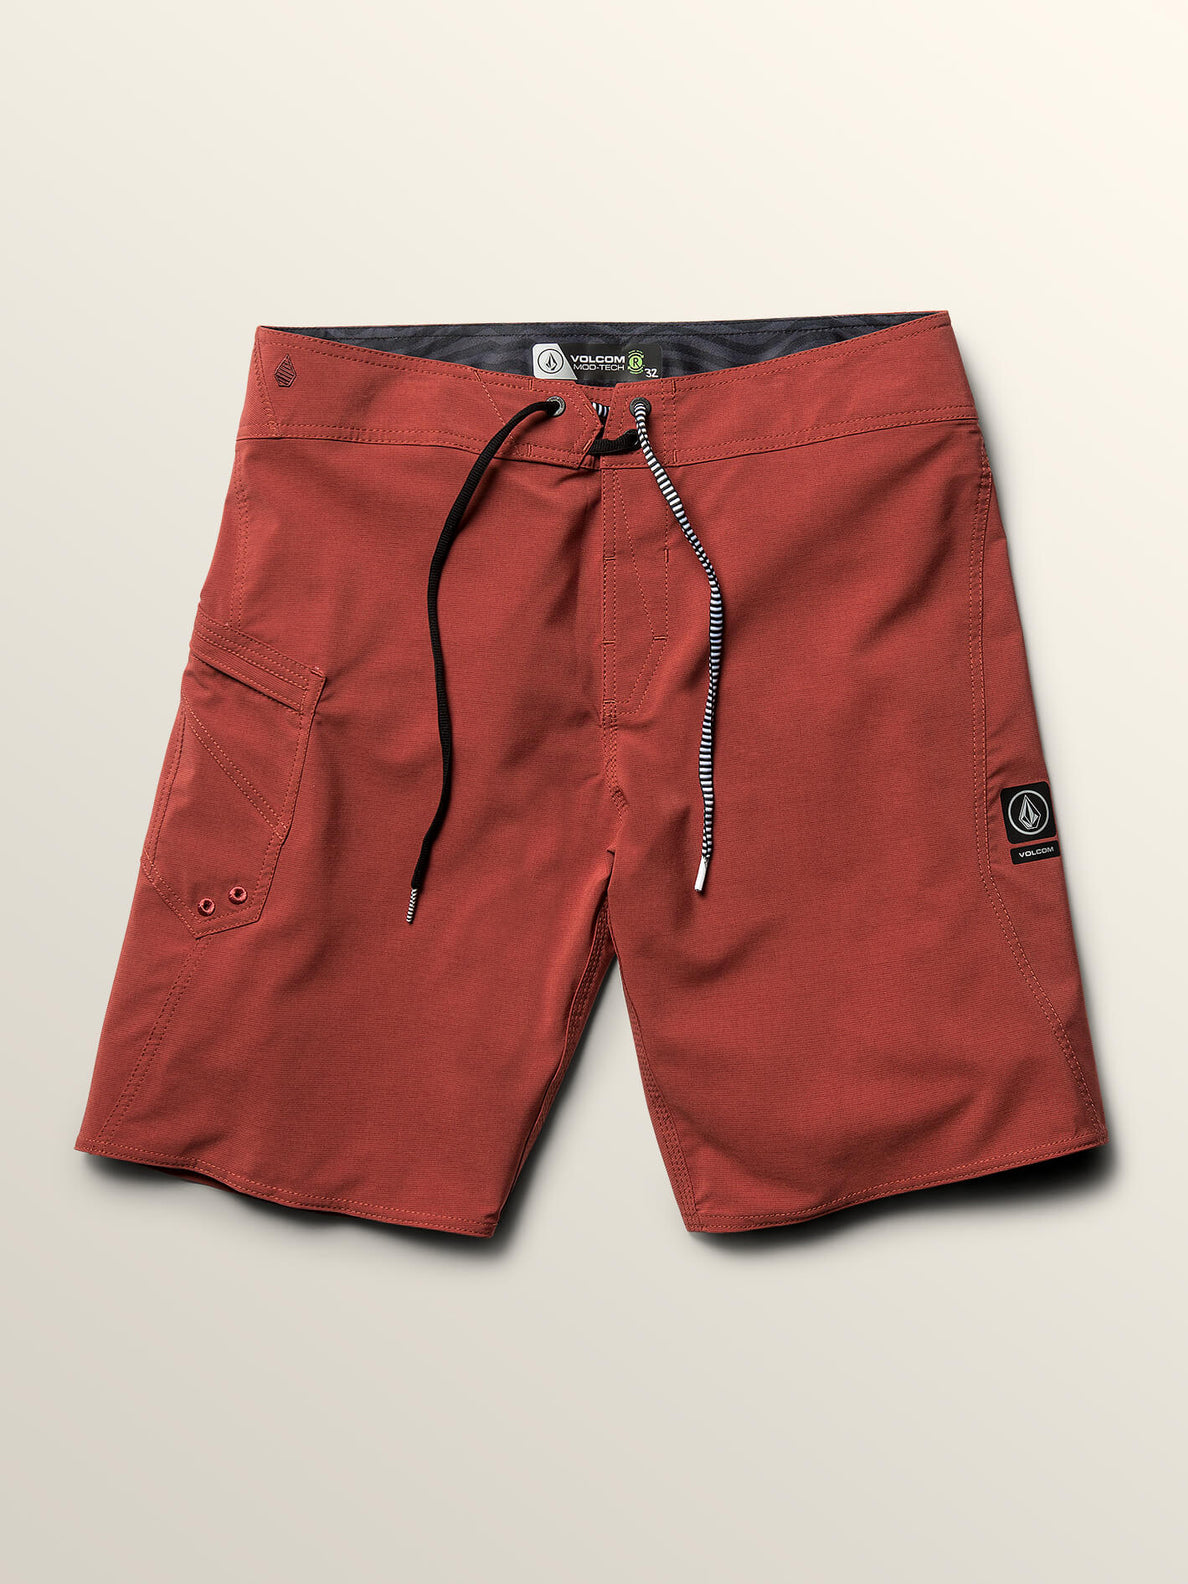 Lido Solid Mod Boardshorts In Rust, Third Alternate View